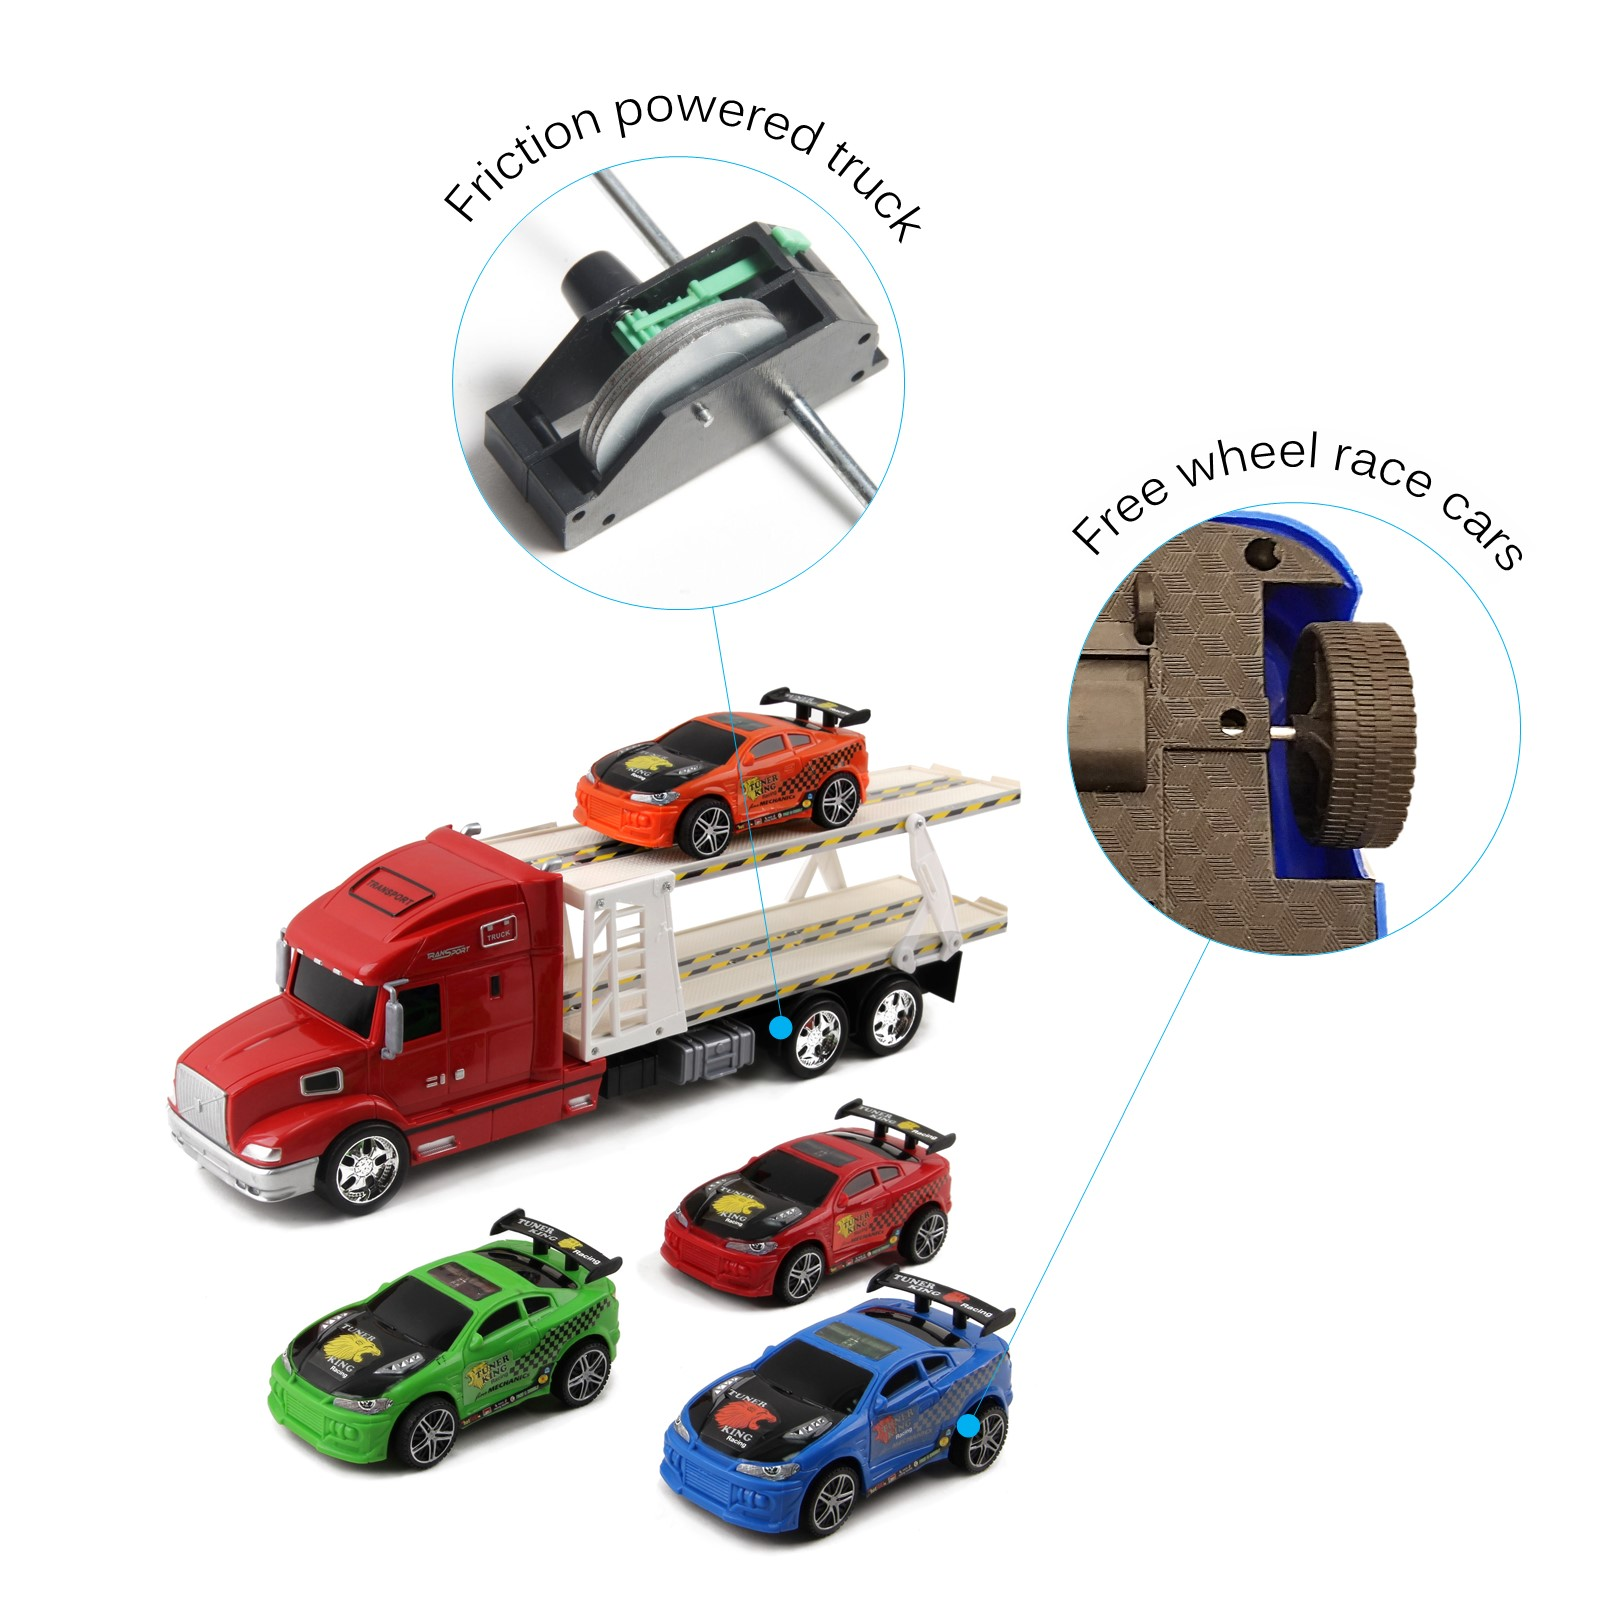 Friction Powered Toy Semi Truck Trailer Kids Push And Go Big Rig Carrier Includes Four Race Cars 120 Scale Auto Transporter Vehicle Perfect Pretend Play Imagination Gift For Children